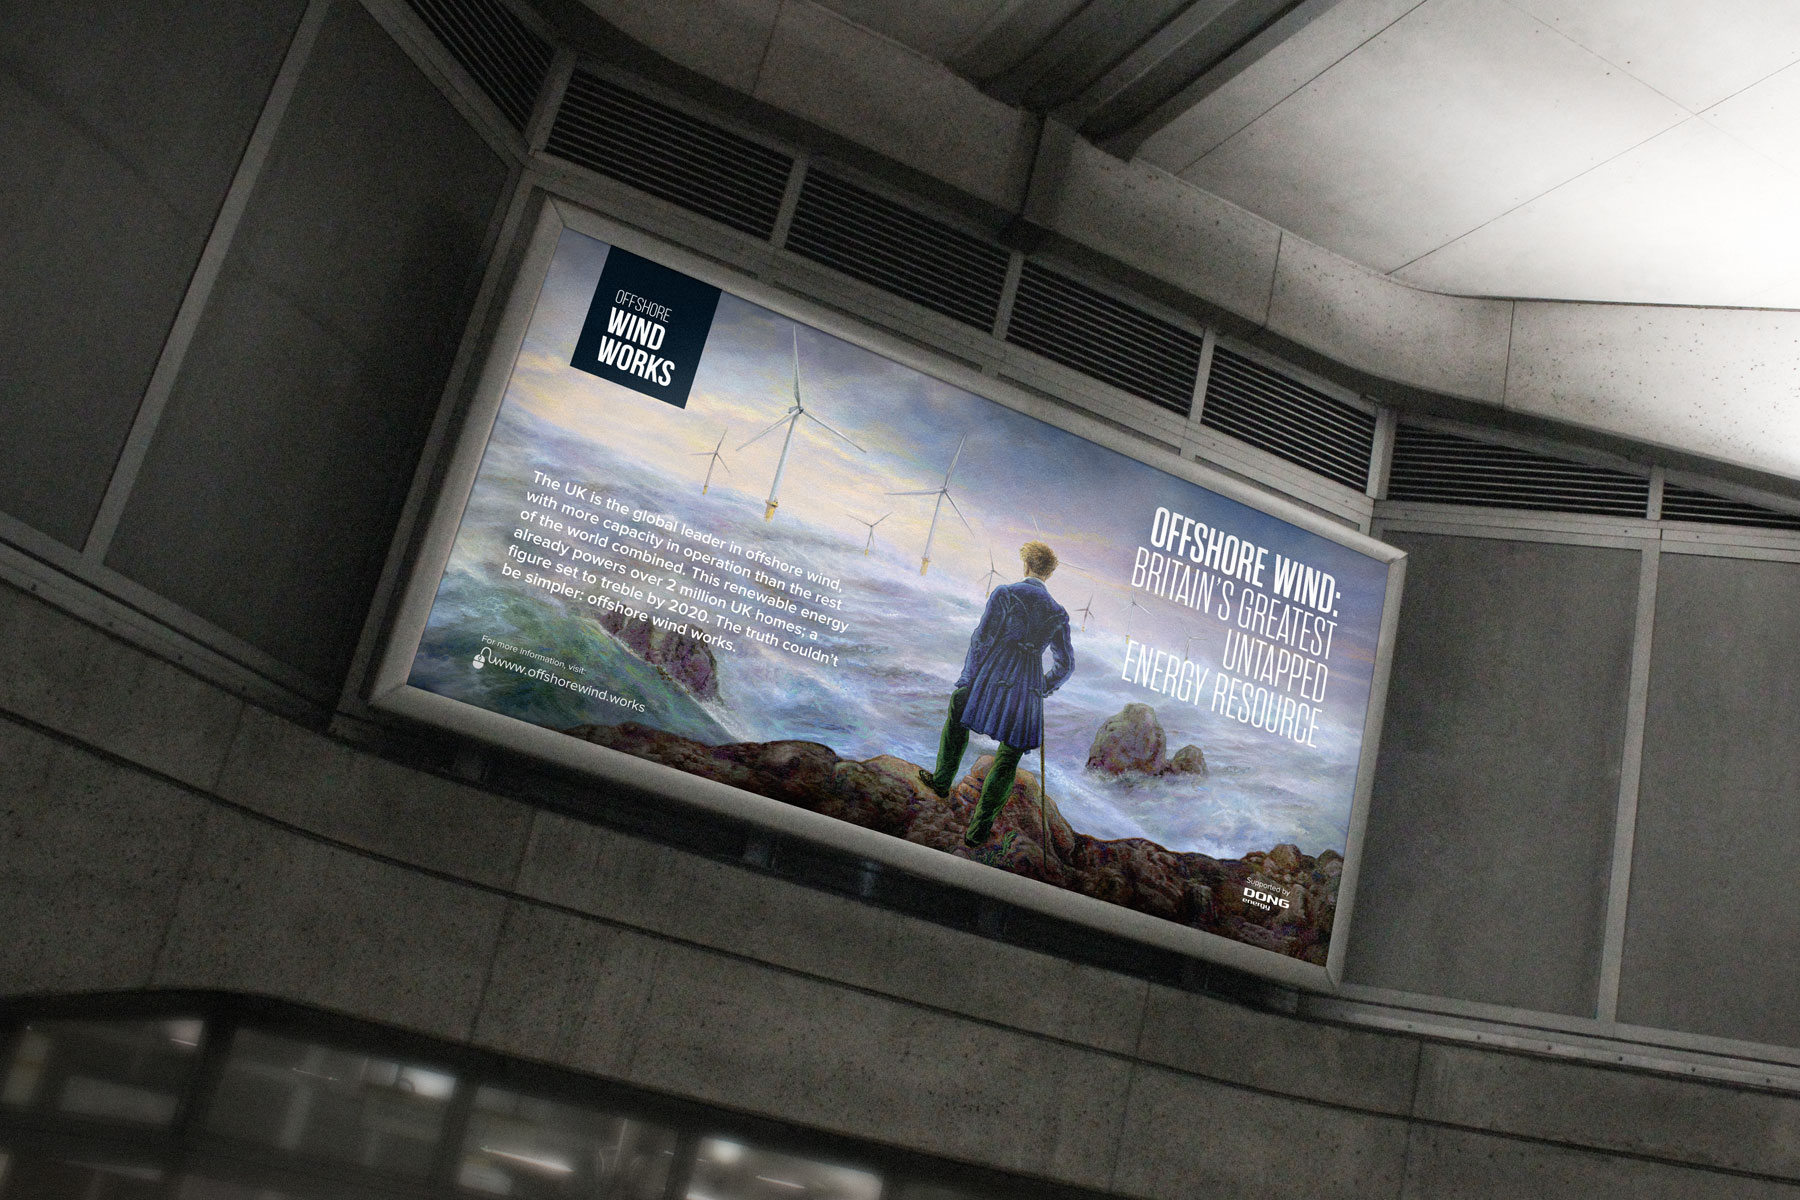 The campaign was displayed in over 230 sites on the London Underground. A special tactical emphasis was placed at Westminster station, with political stakeholders and party conferences in mind.